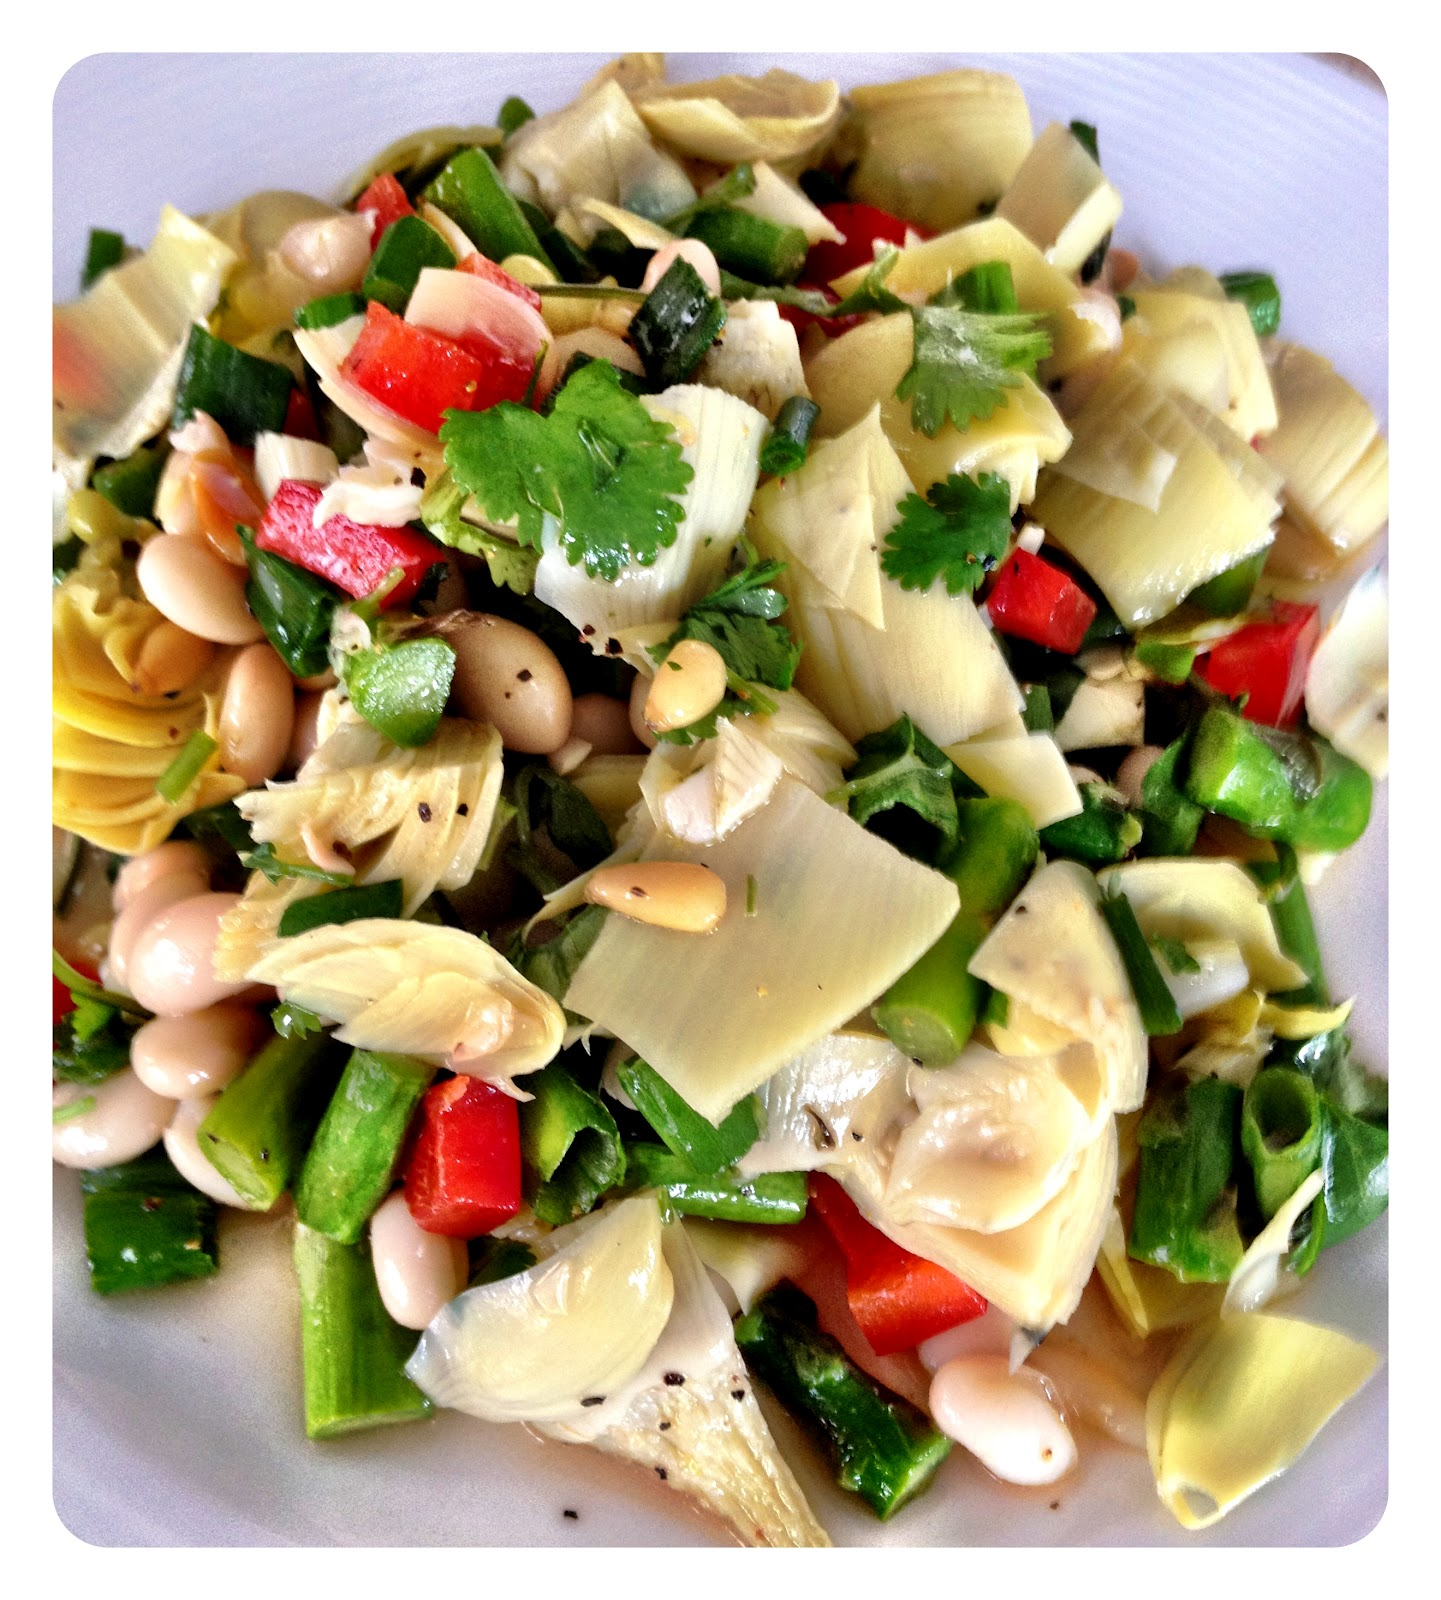 ... in Love: What I'm Cooking: Artichoke Heart and Asparagus Spring Salad